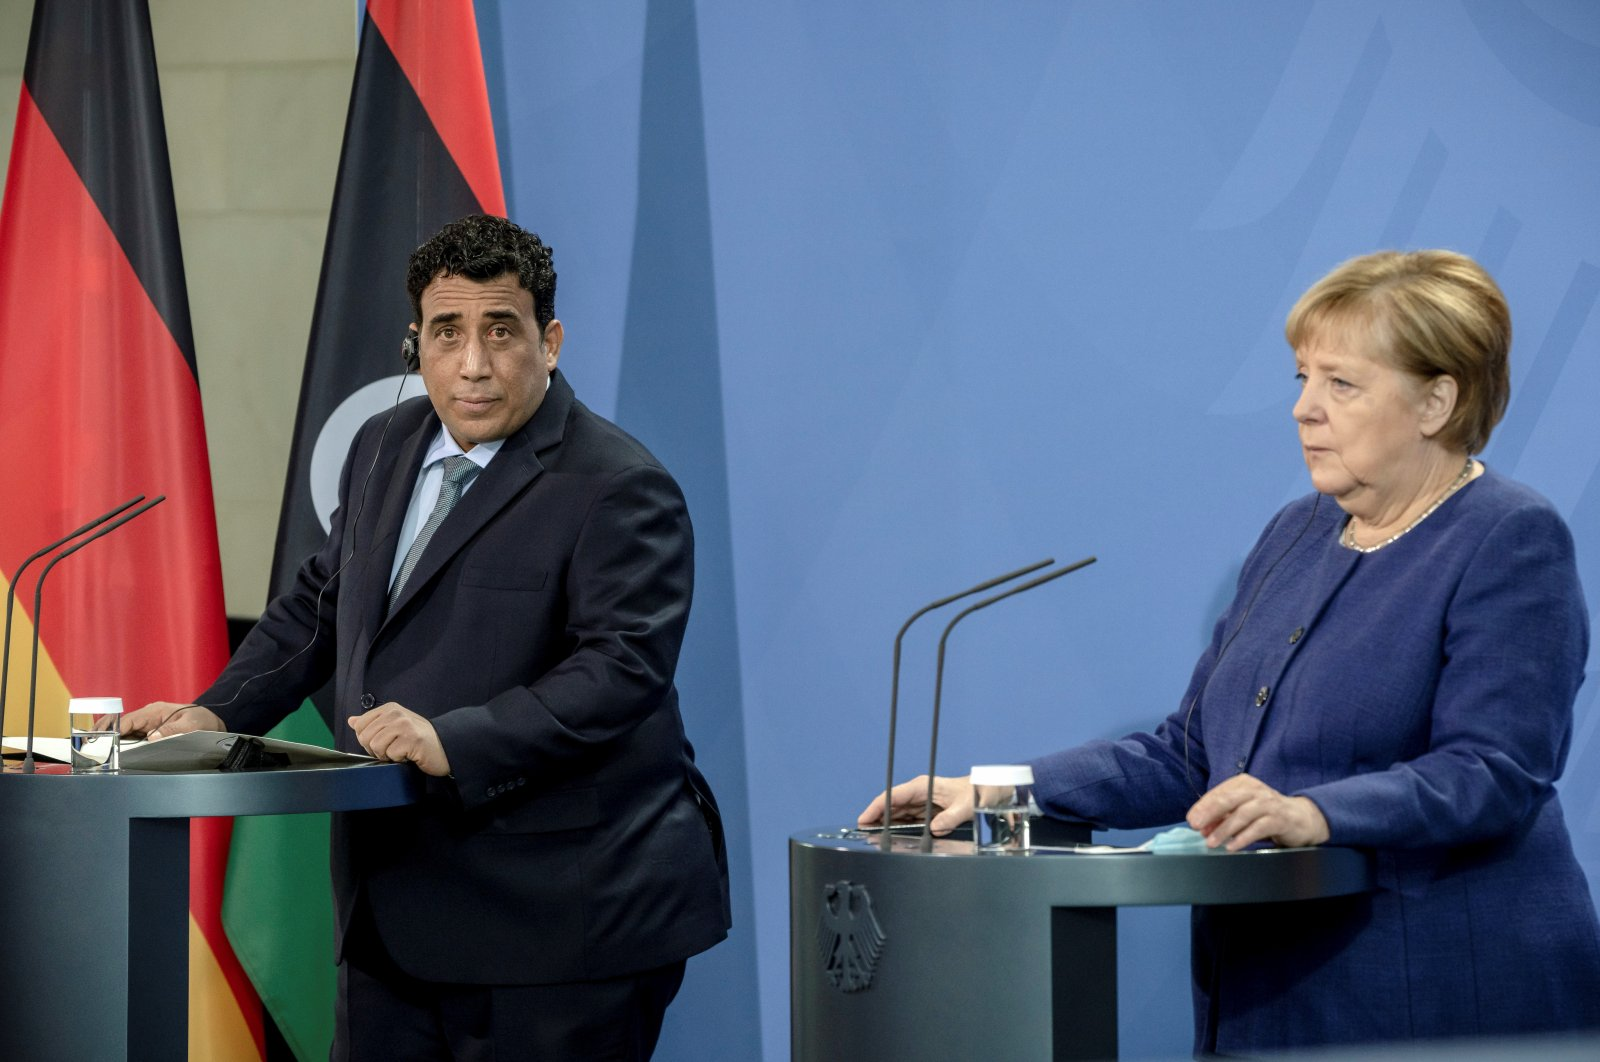 Germany's Chancellor Angela Merkel and president of the Libyan Presidential Council Mohamed Yunus al-Menfi give a joint statement in Berlin, Germany, Oct. 1, 2021. (Reuters Photo)